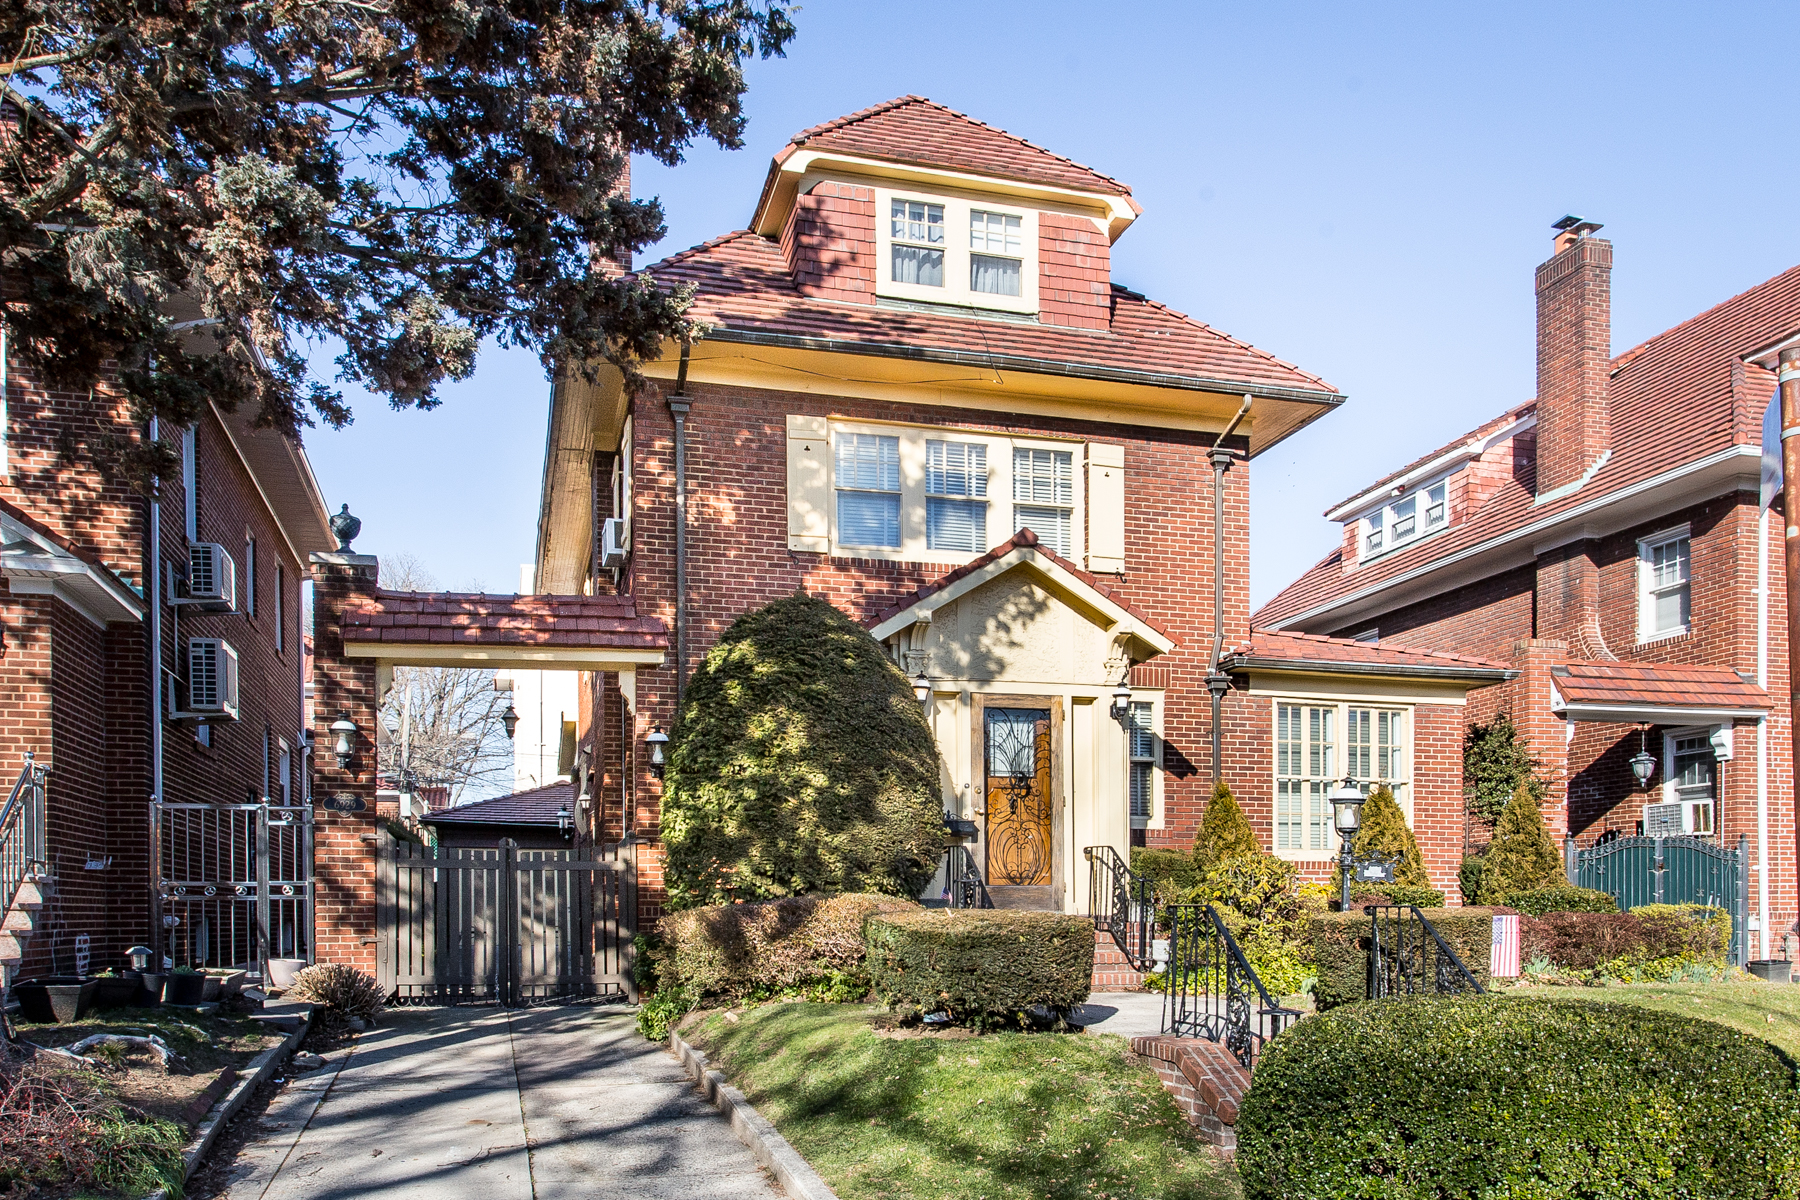 """Single Family Homes for Sale at """"DETACHED & READY FOR YOUR PERSONAL TOUCH"""" 69-29 Exeter Street, Forest Hills, New York 11375 United States"""